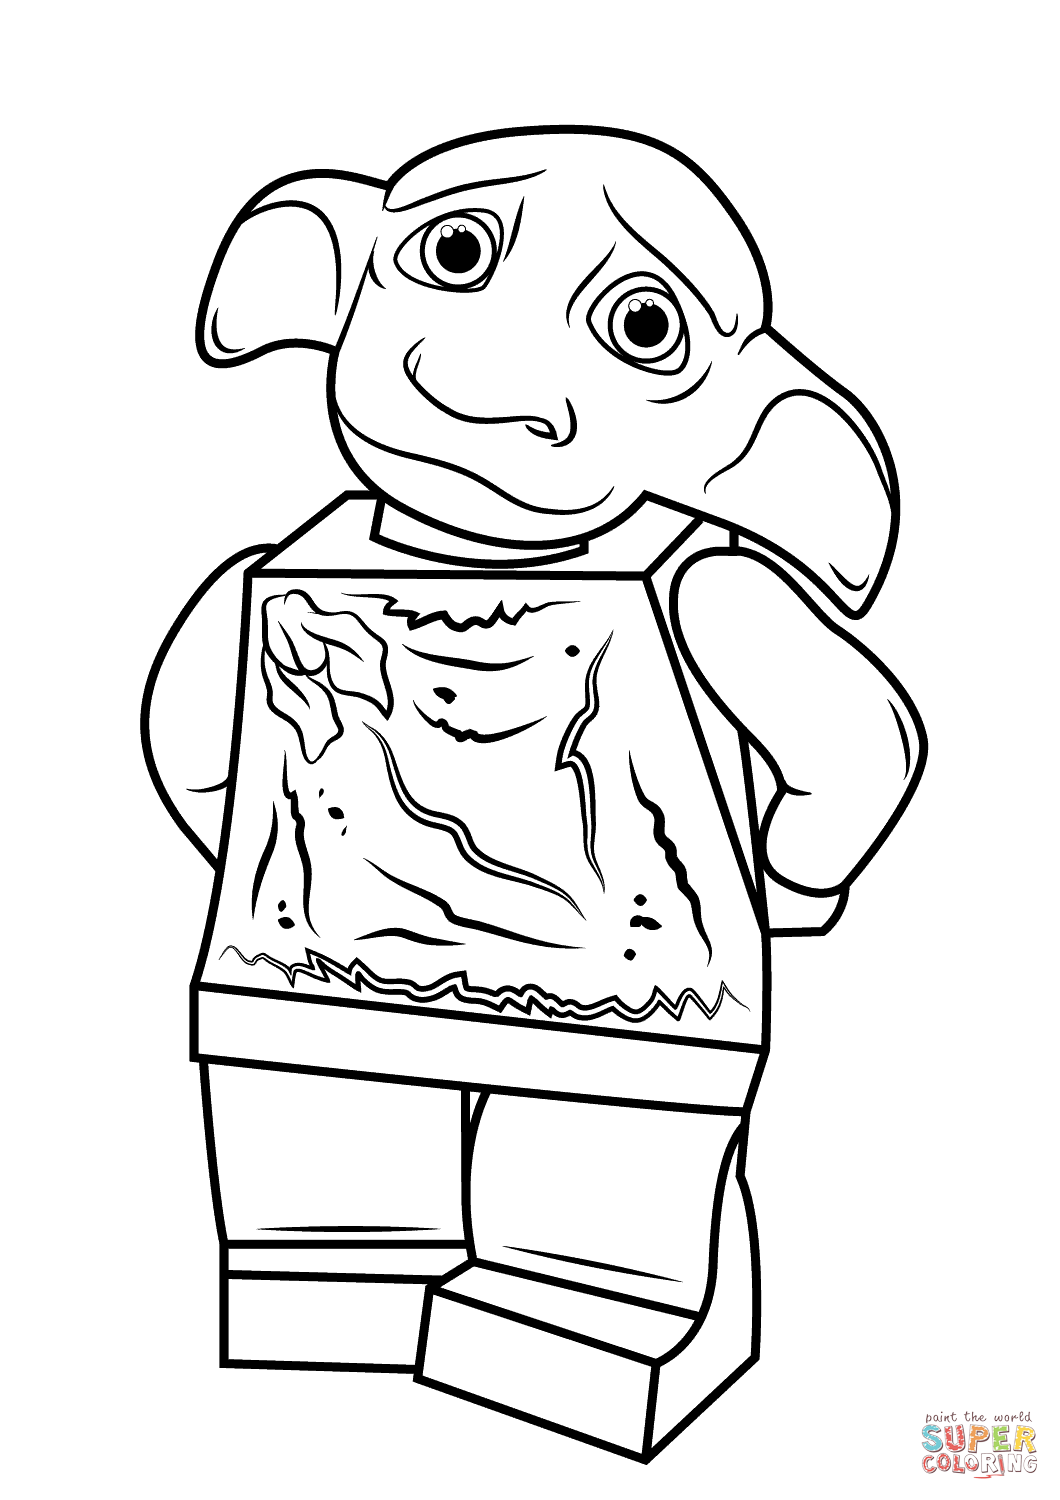 Lego Harry Potter Dobby Coloring Page